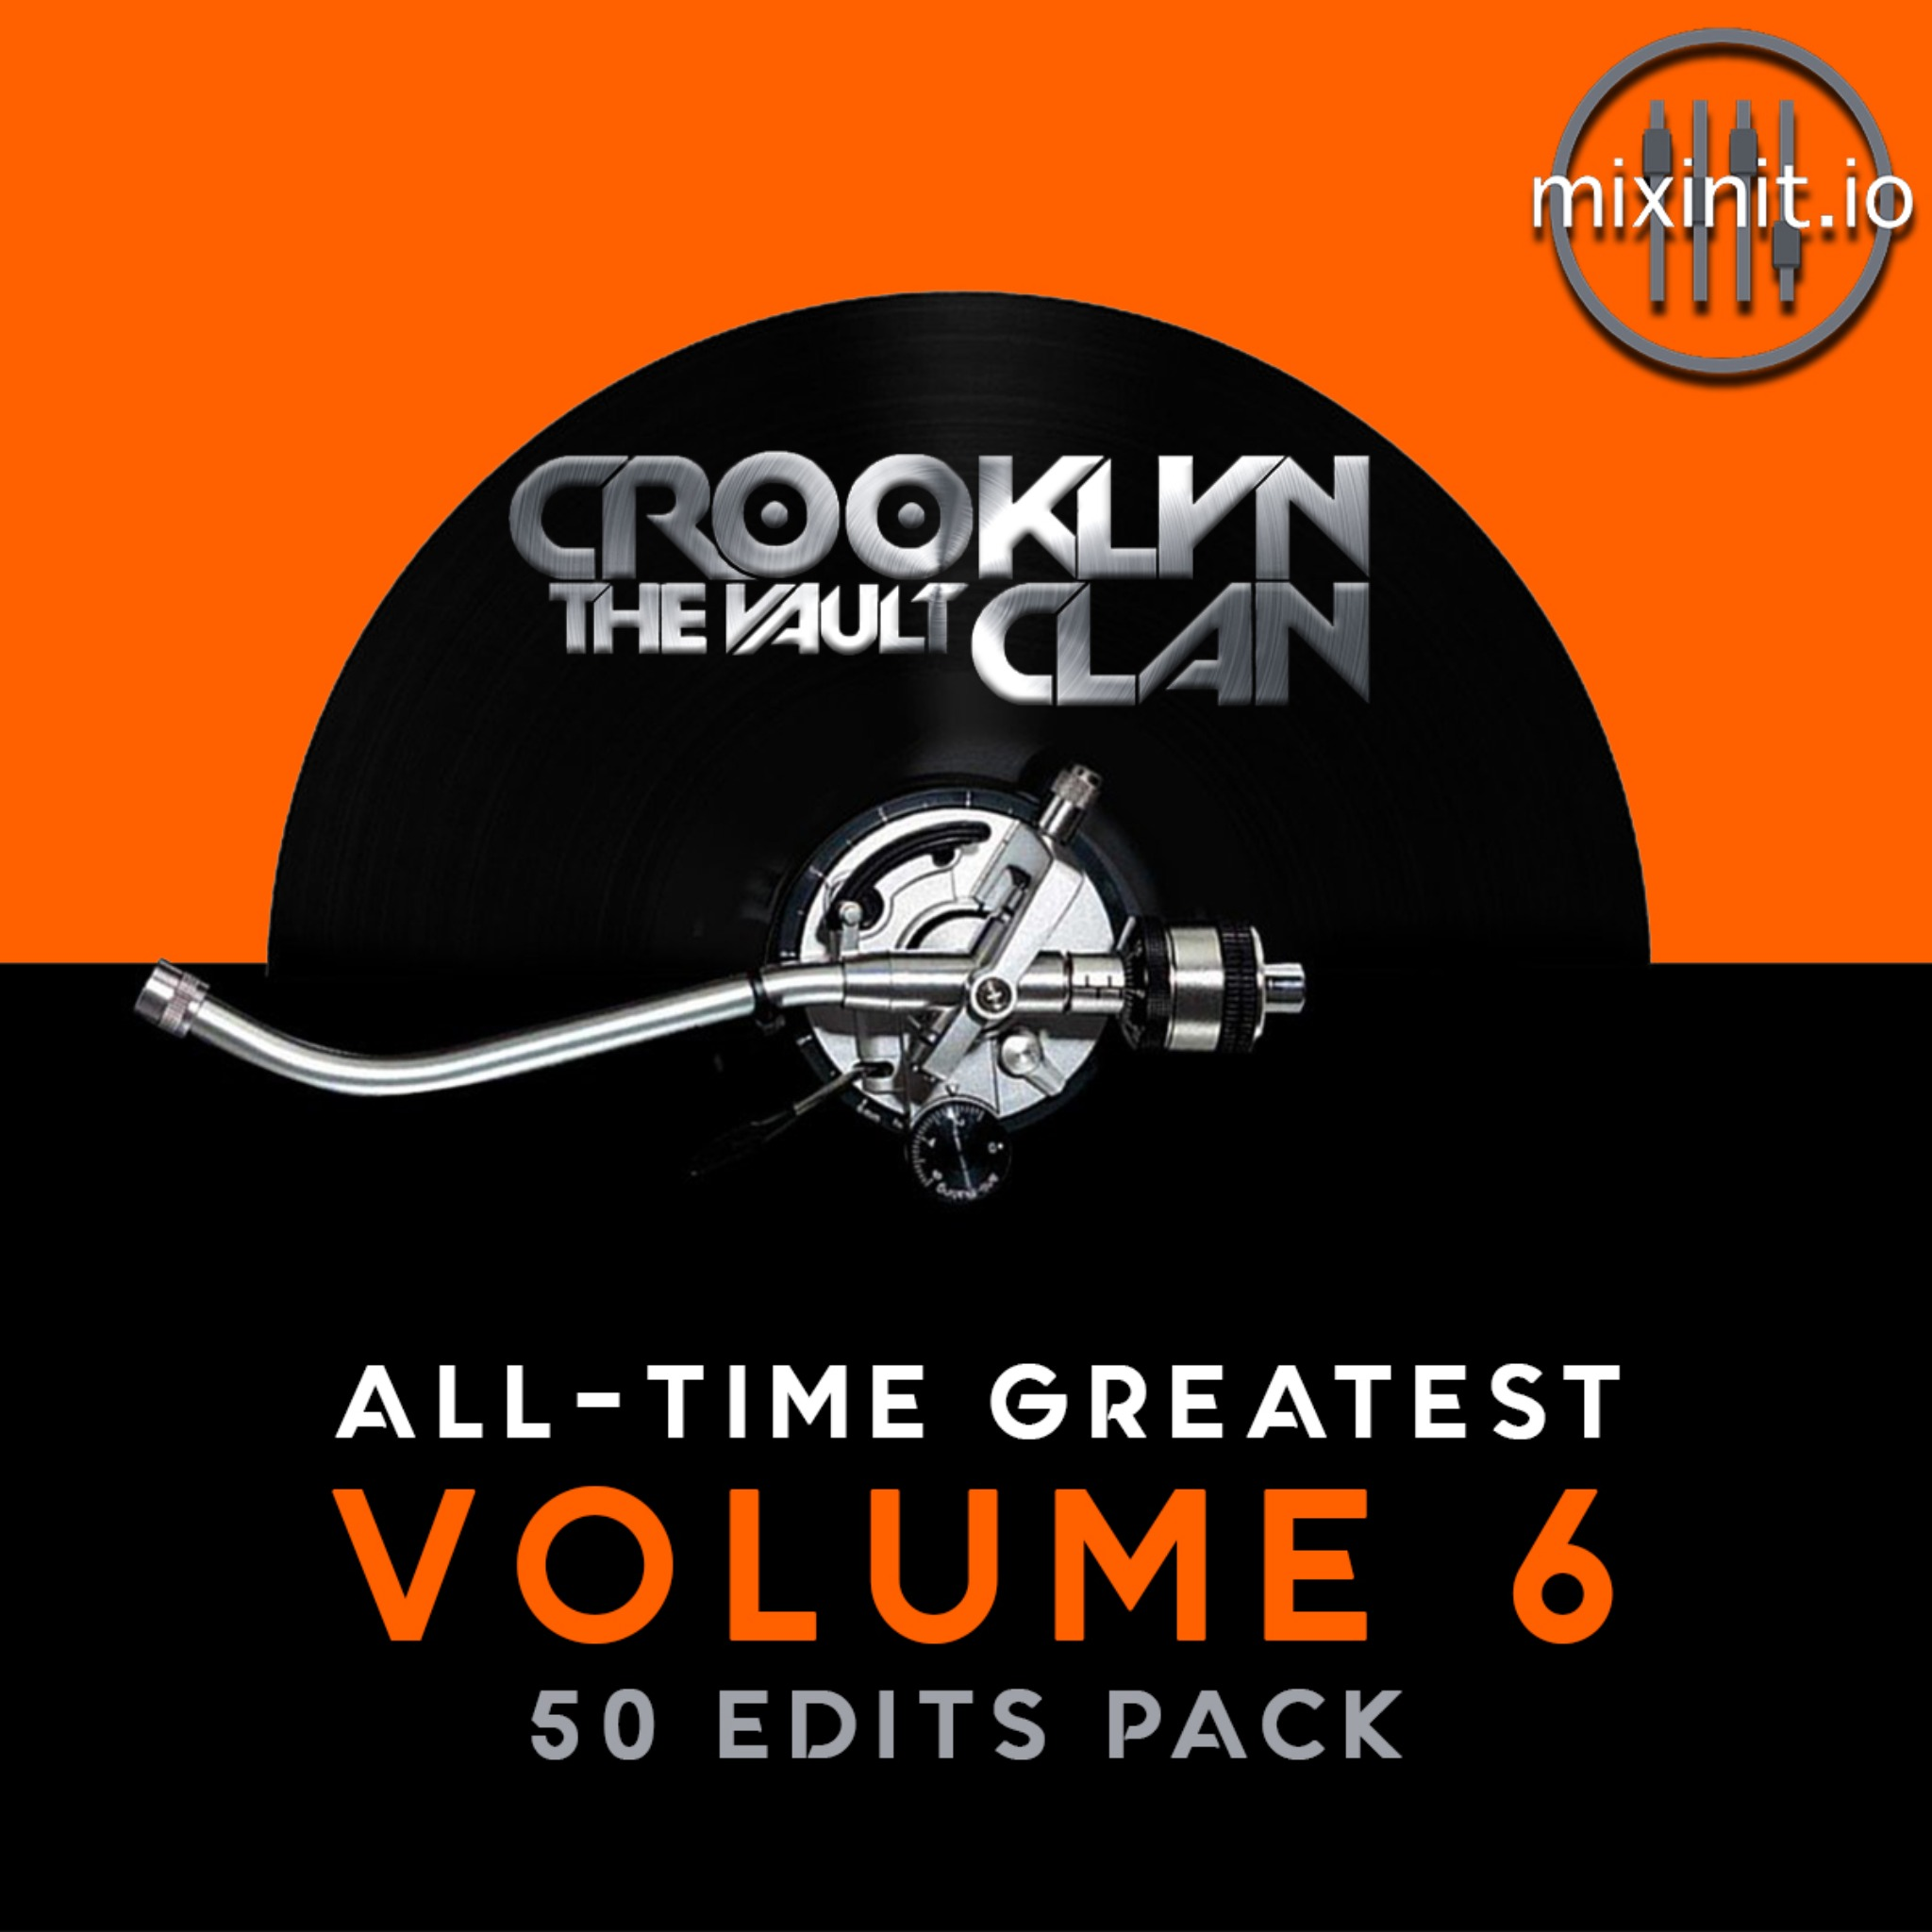 Best Of The Crooklyn Clan Vault Vol. 6 (Various Editors)